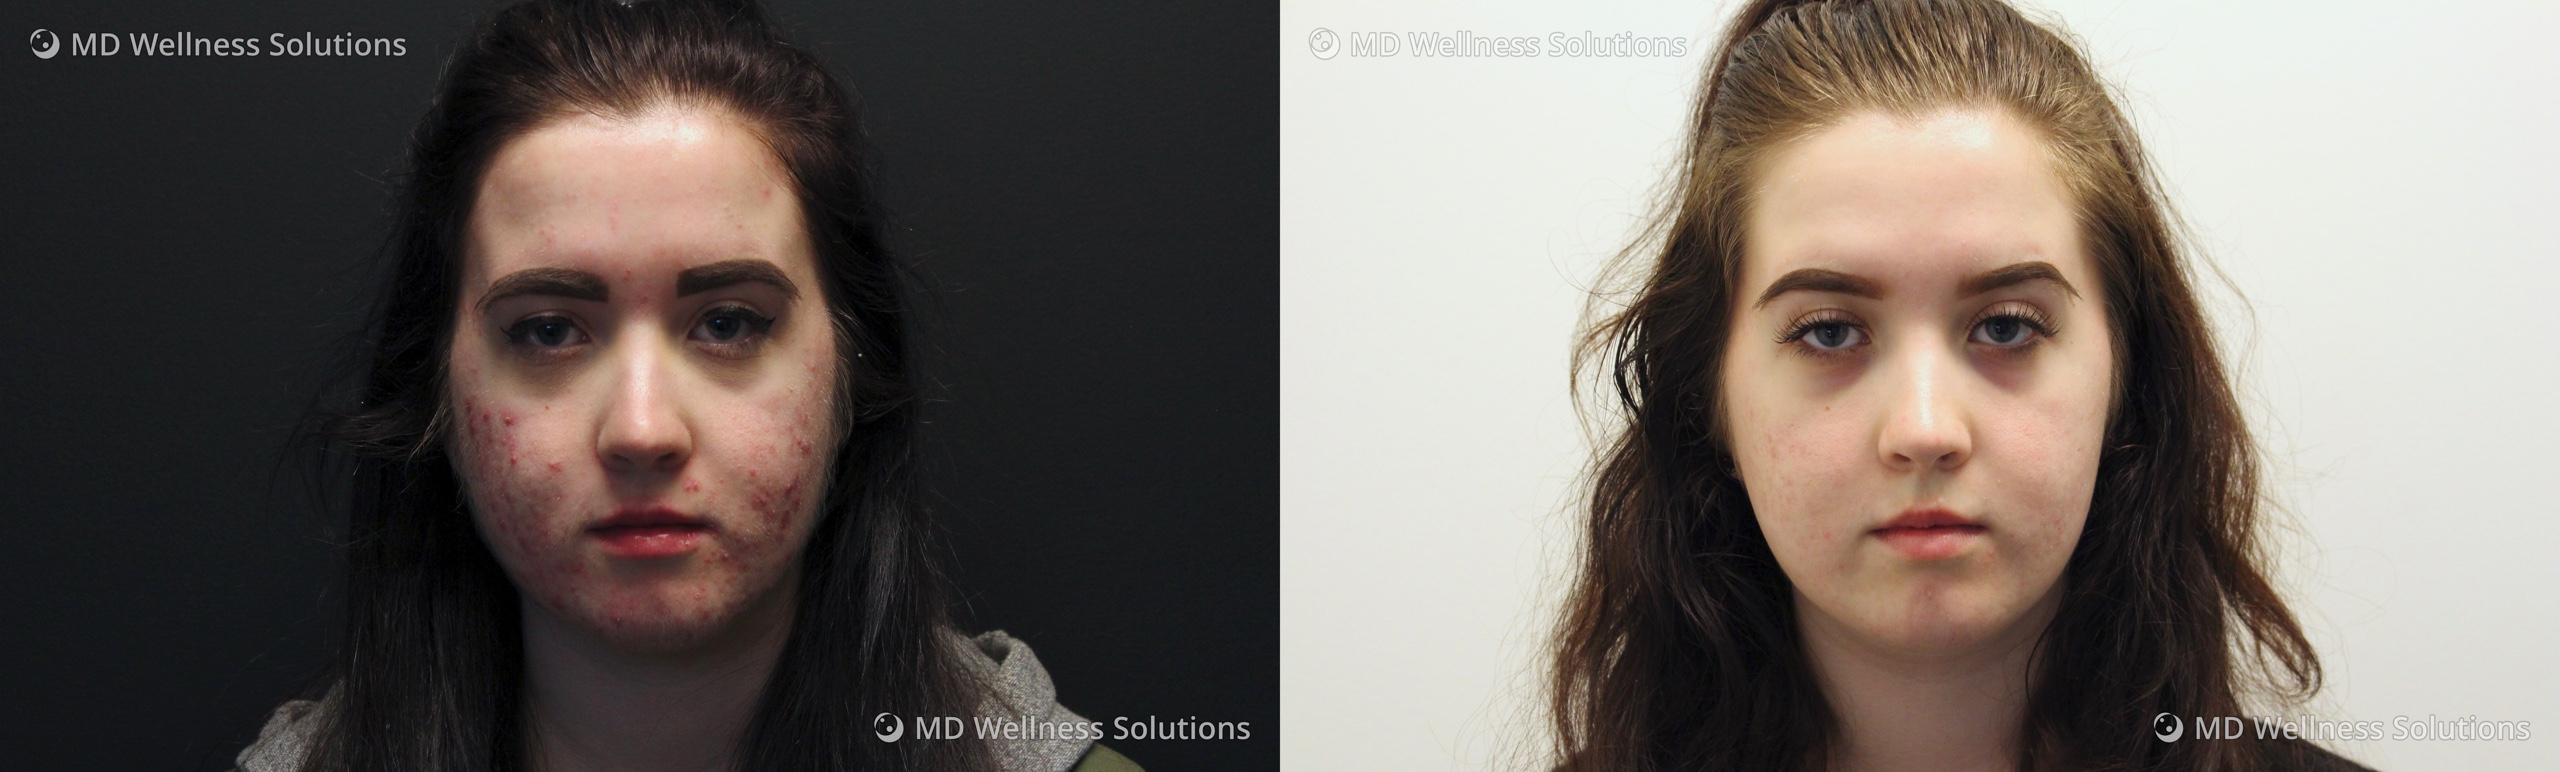 18-24 year old woman before and after acne treatment